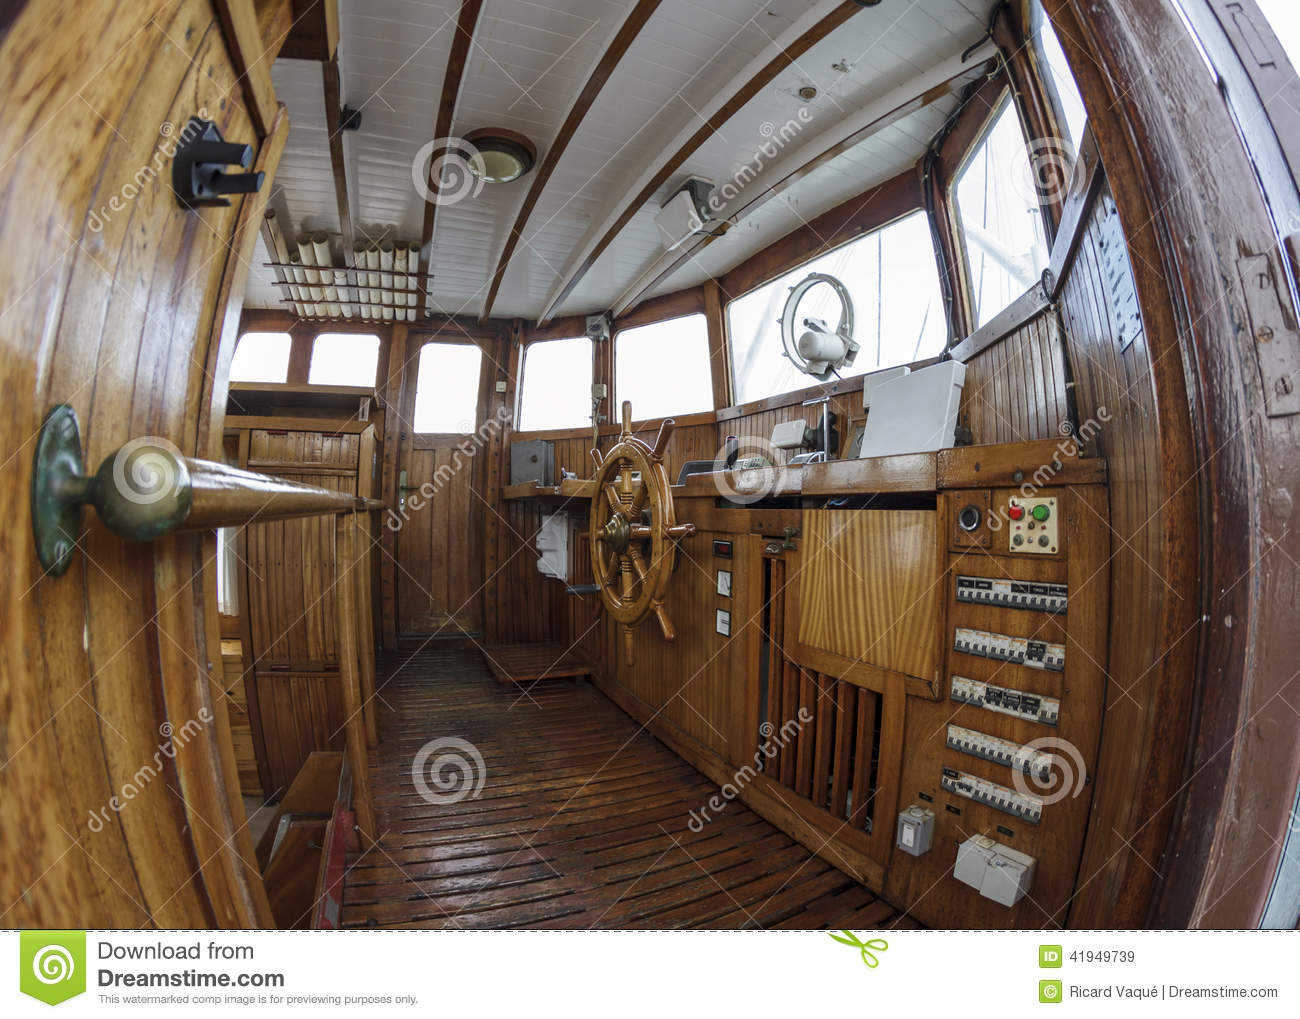 Wheelhouse, helm wheel and control panels in an old wooden boat. Point ...